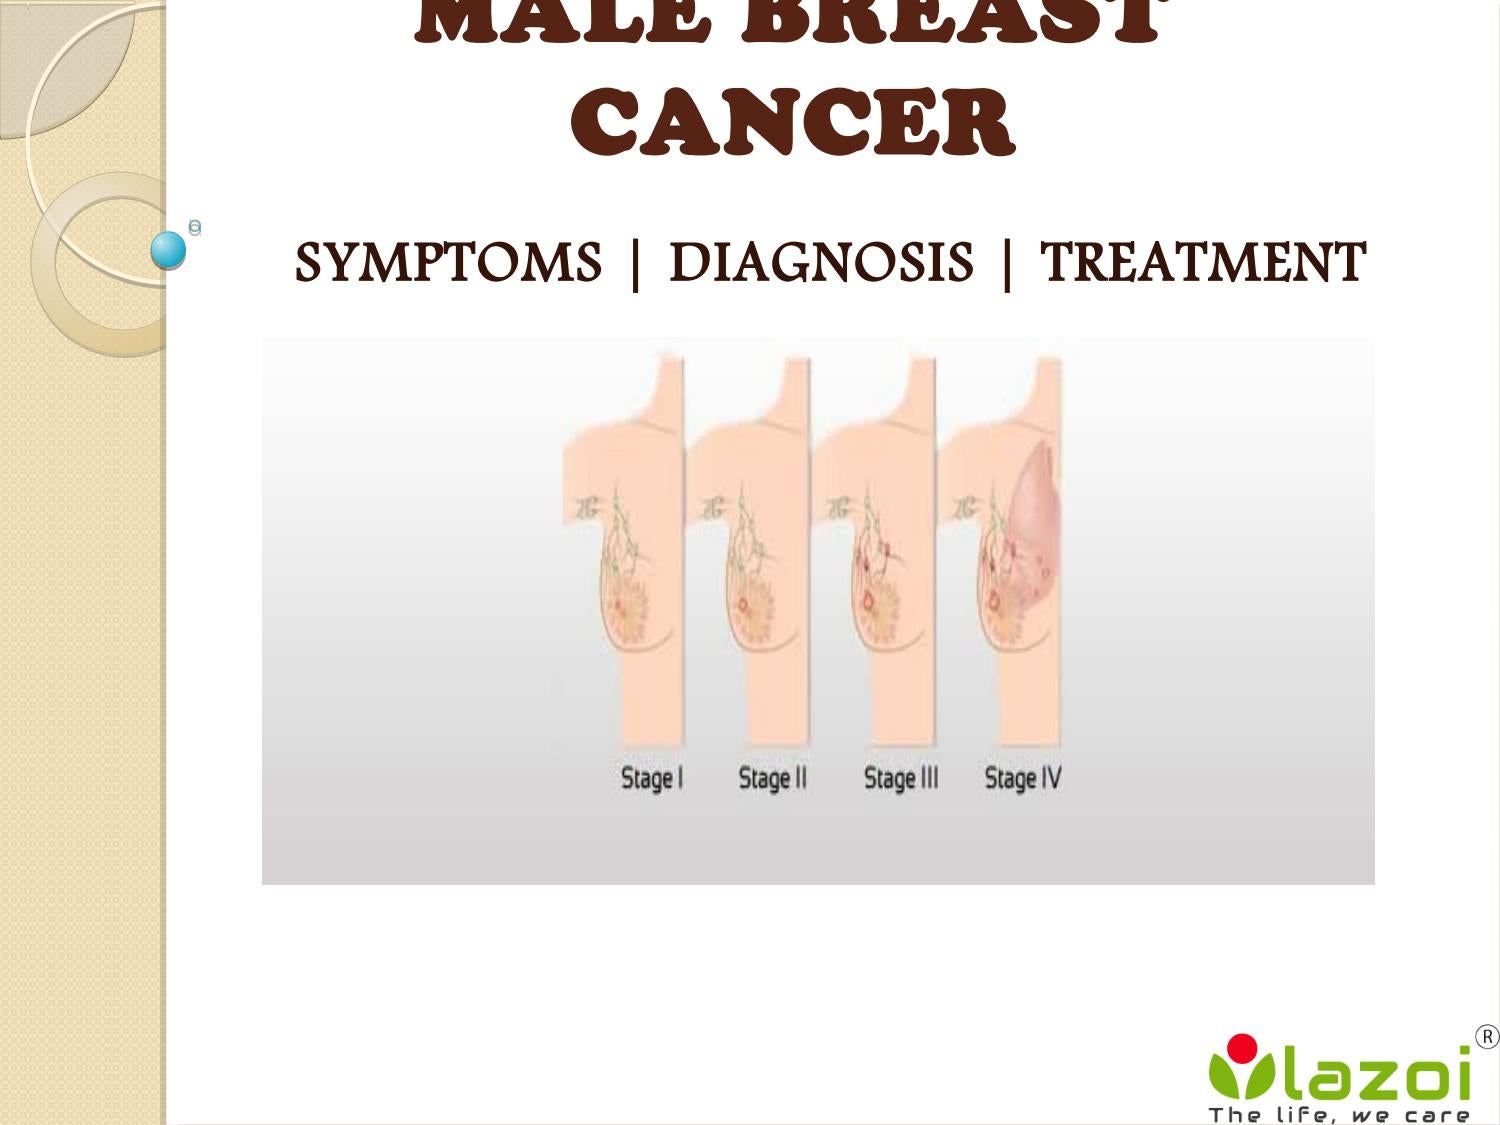 Male Breast Cancer Symptoms Diagnosis And Treatment By